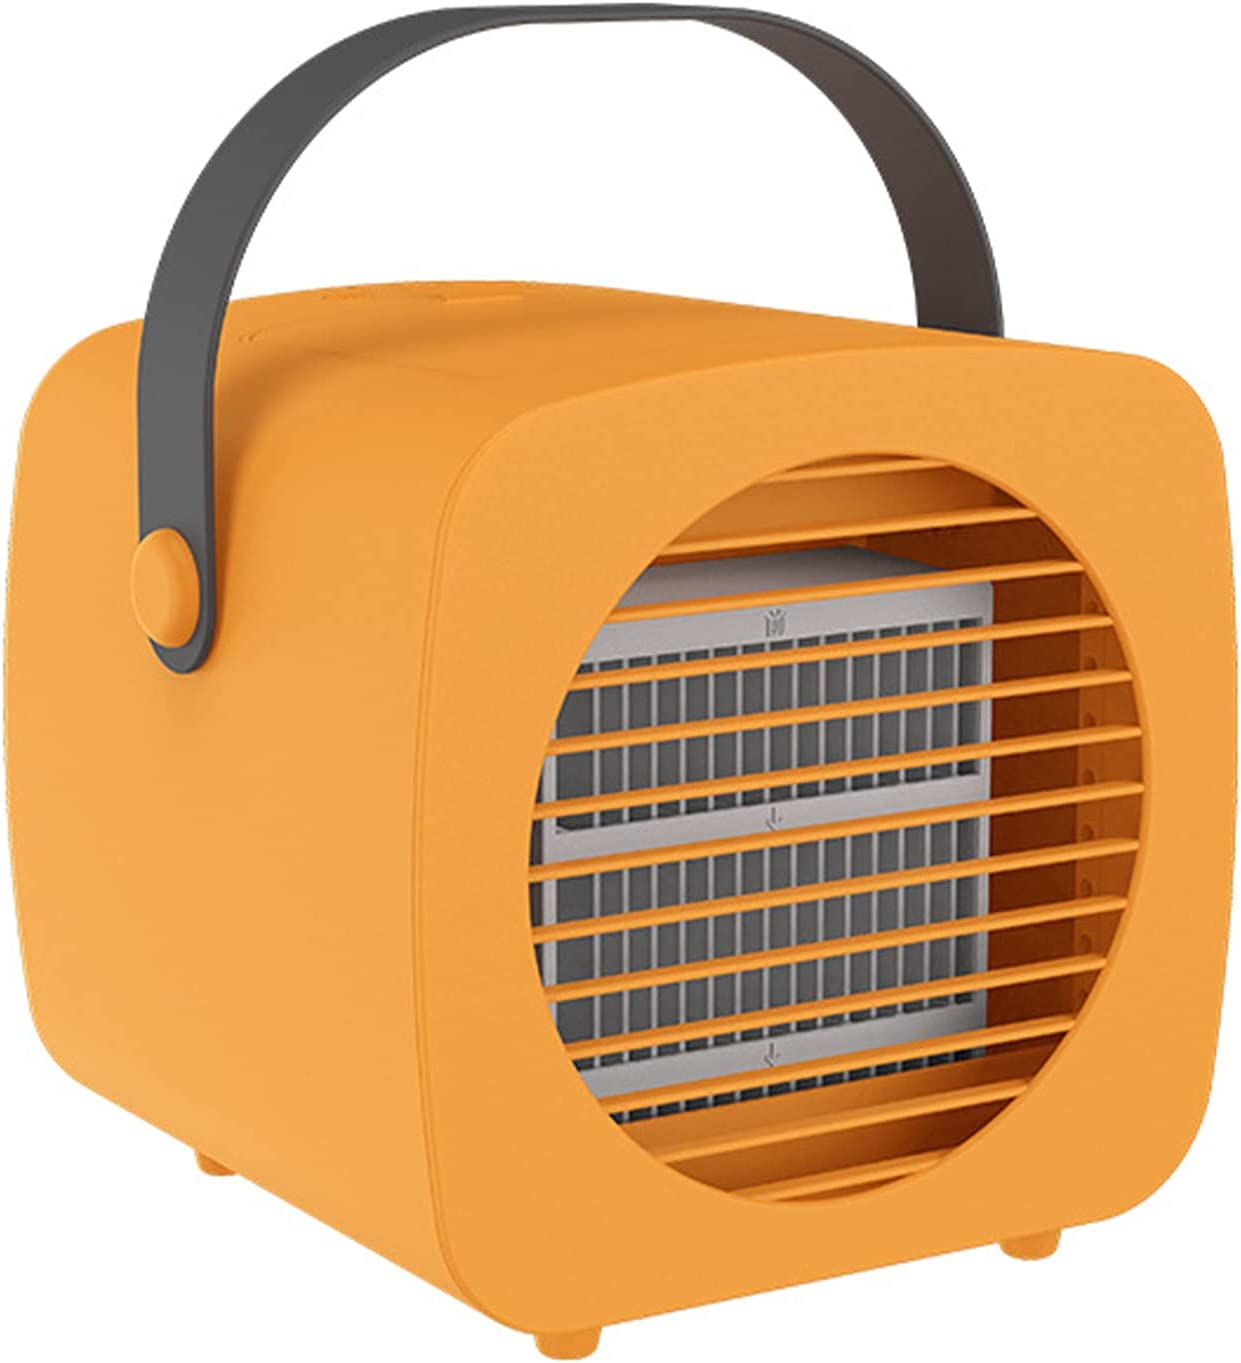 XHMJ Mini Air Conditioner, PP Material, Three-Level Wind Speed Adjustment, Low Noise USB Power Supply, Suitable for Dormitory/Office Etc,6.3x7x6.5 Inchs Orange